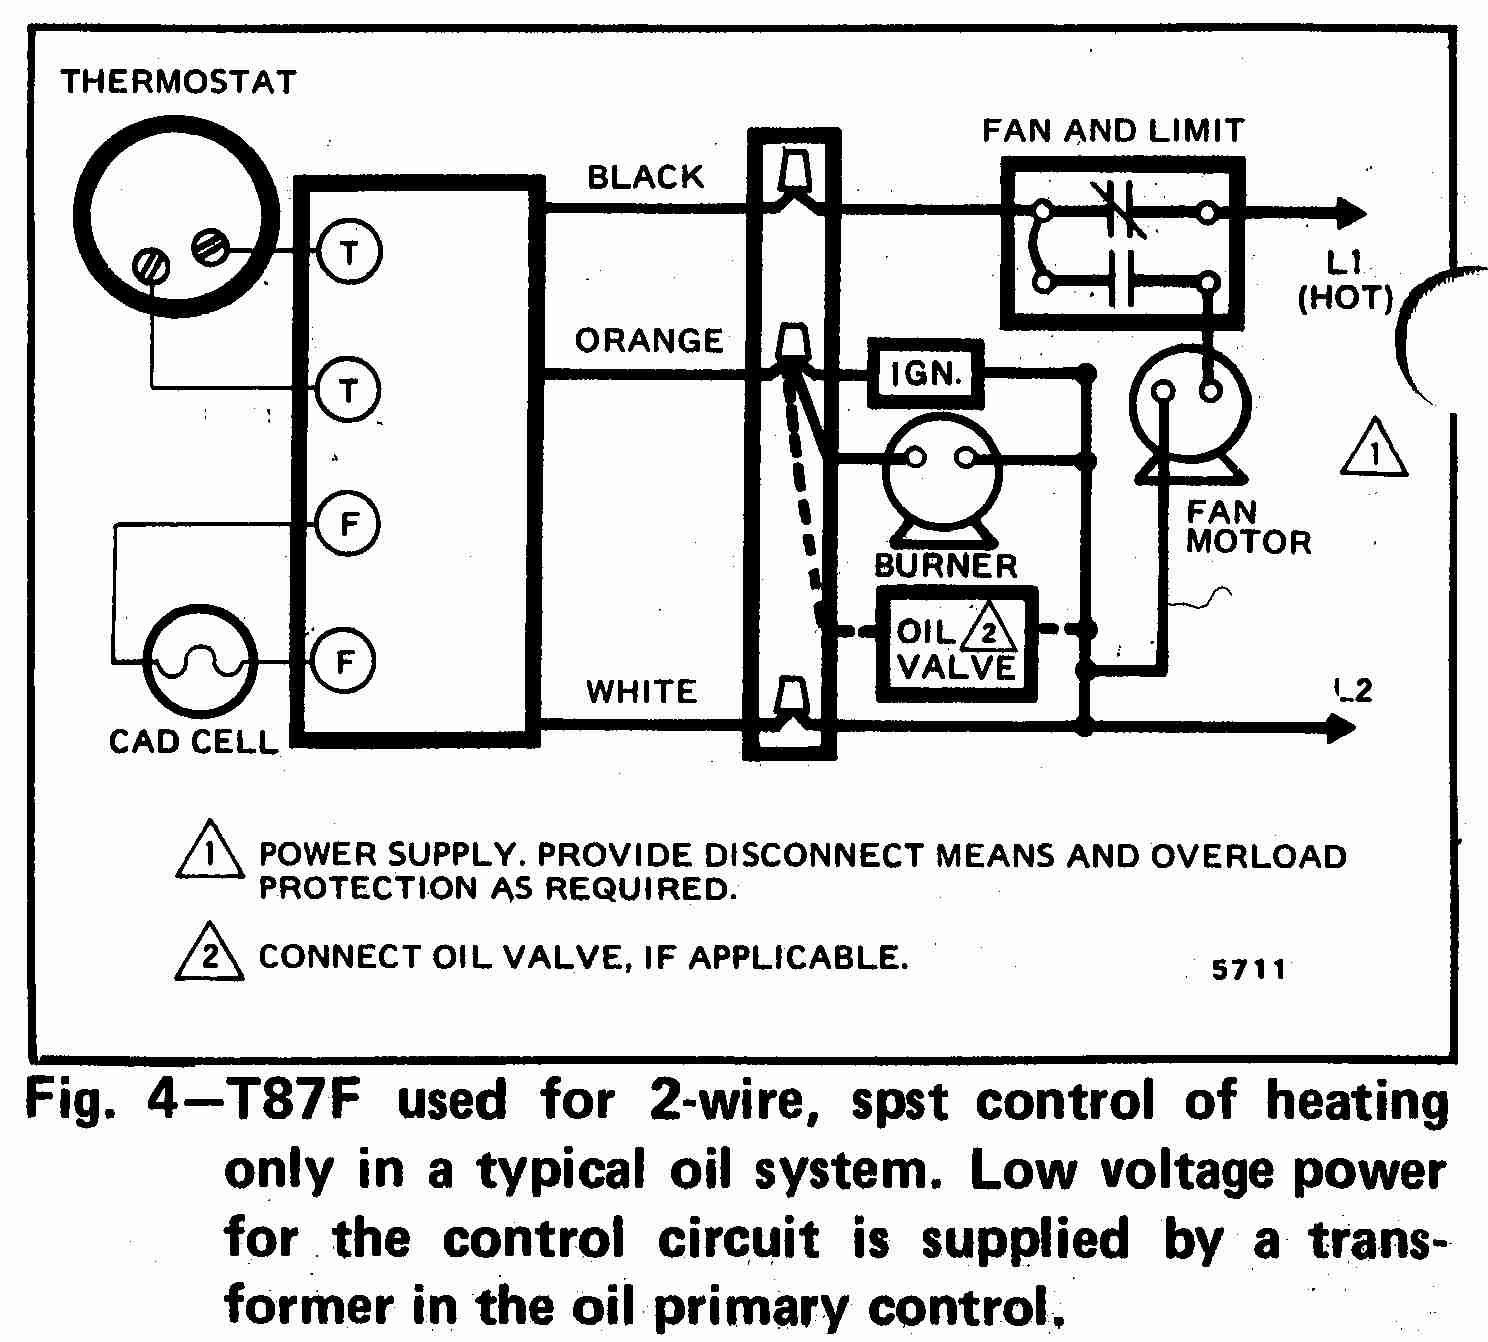 medium resolution of honeywell v8043f1036 wiring diagram diagram diagram wire charthoneywell v8043f1036 wiring diagram